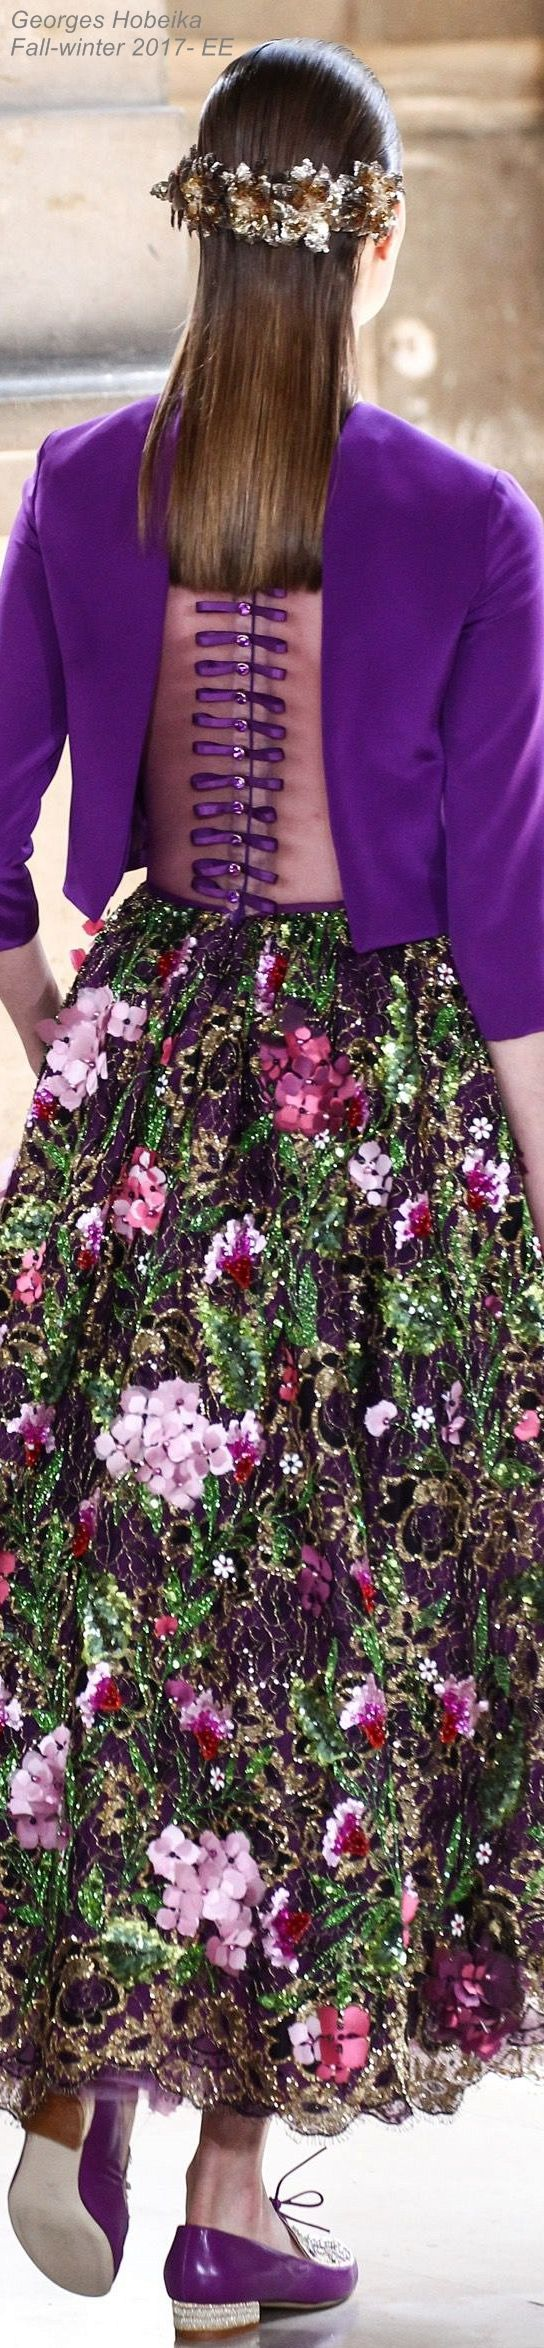 Georges Hobeika Fall-winter 2016-2017